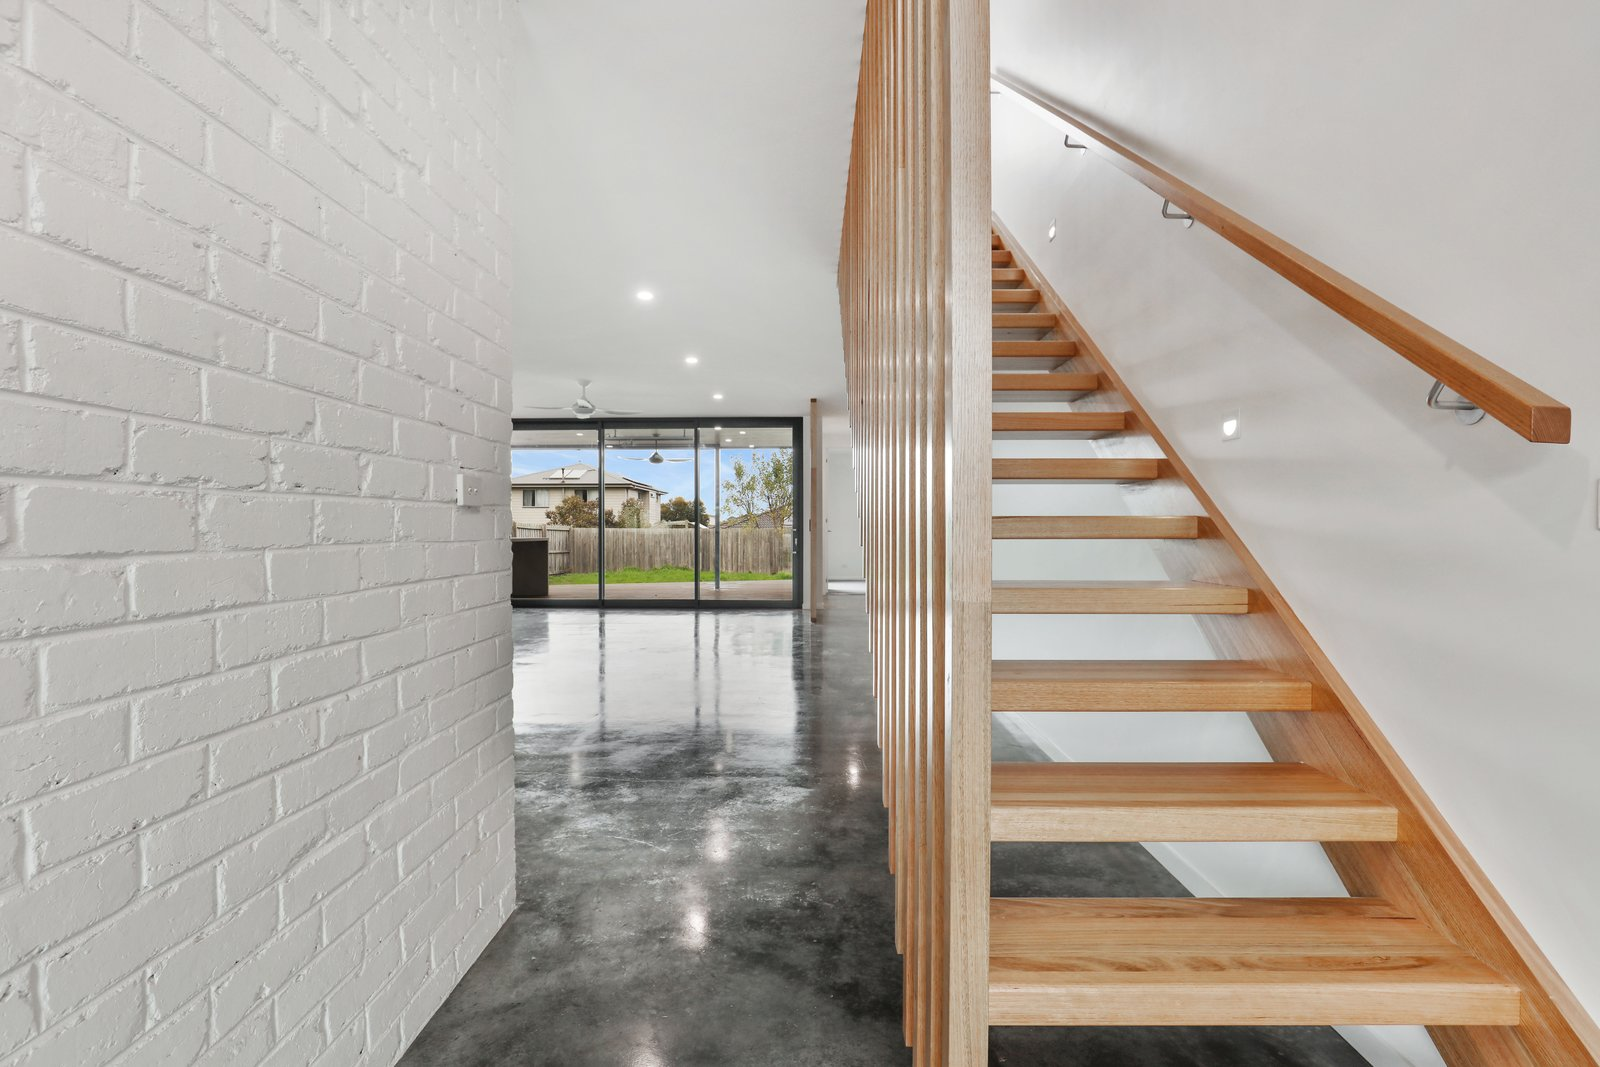 Staircase, Wood Railing, and Wood Tread  Tamara Crecsent by Inverloch 3996